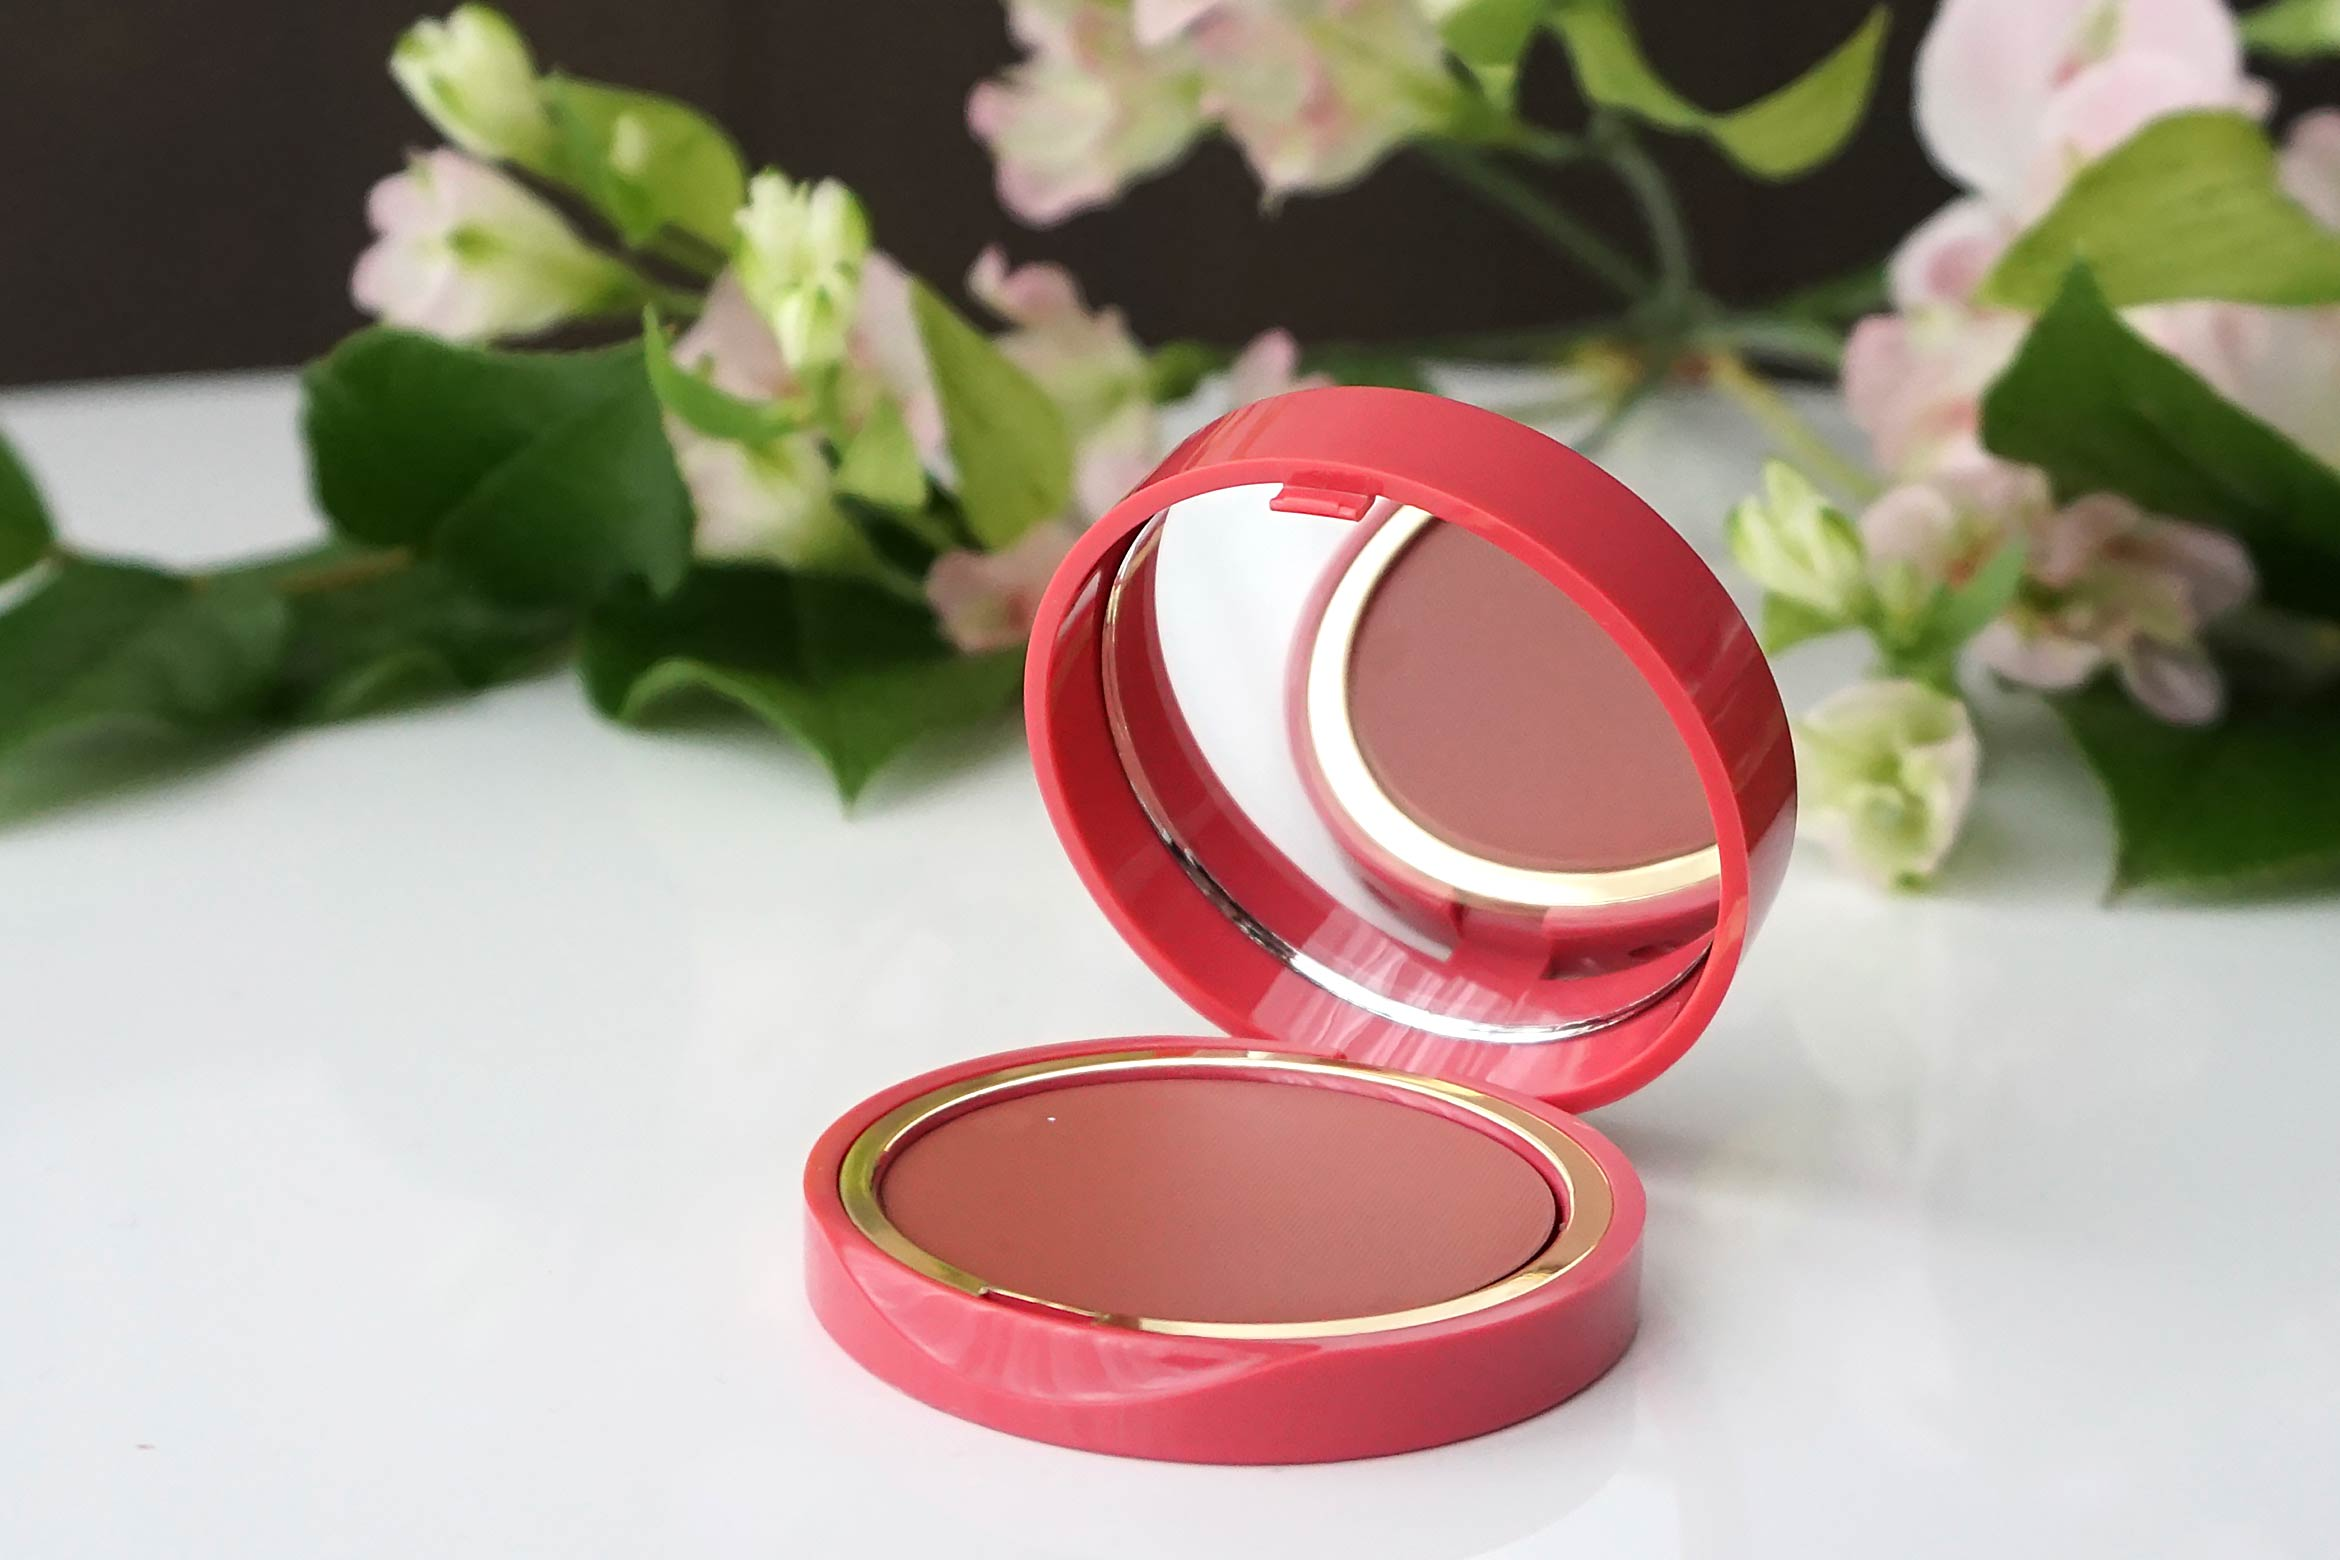 Pupa-Glamourose-at-first-blush-review-1